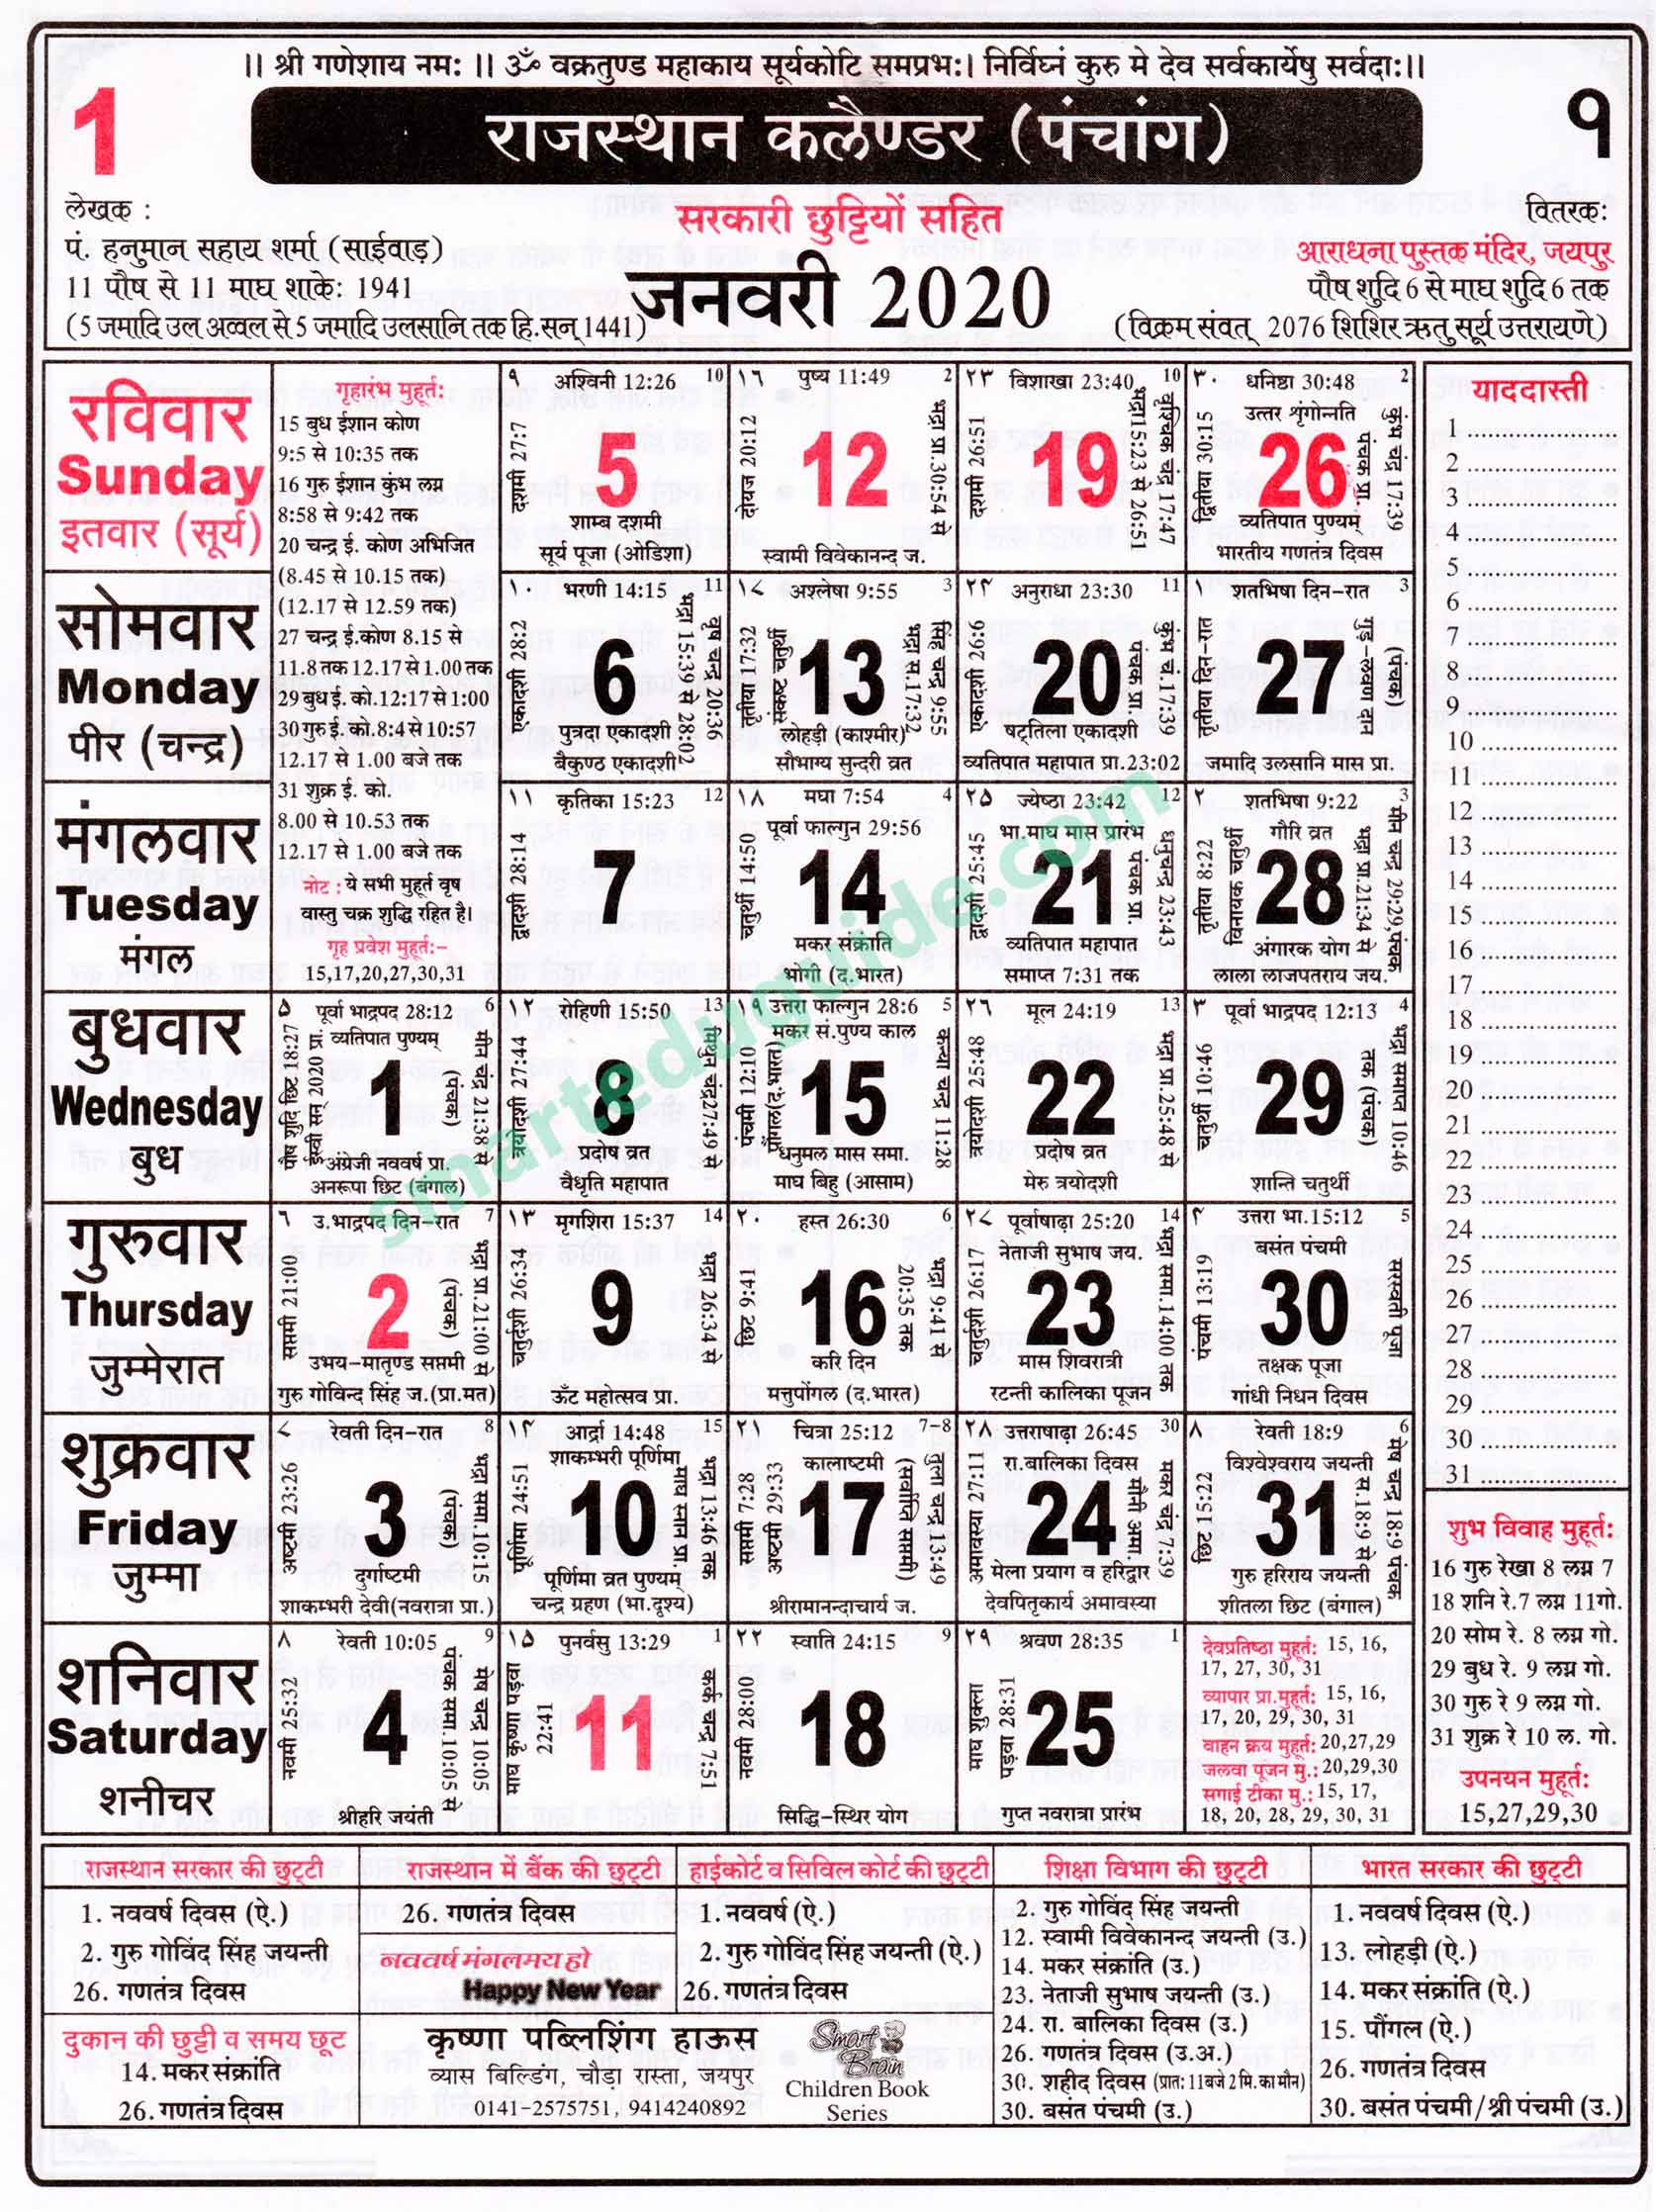 Rajasthan Calendar 2020 January | Seg throughout Kerala Govt Calender